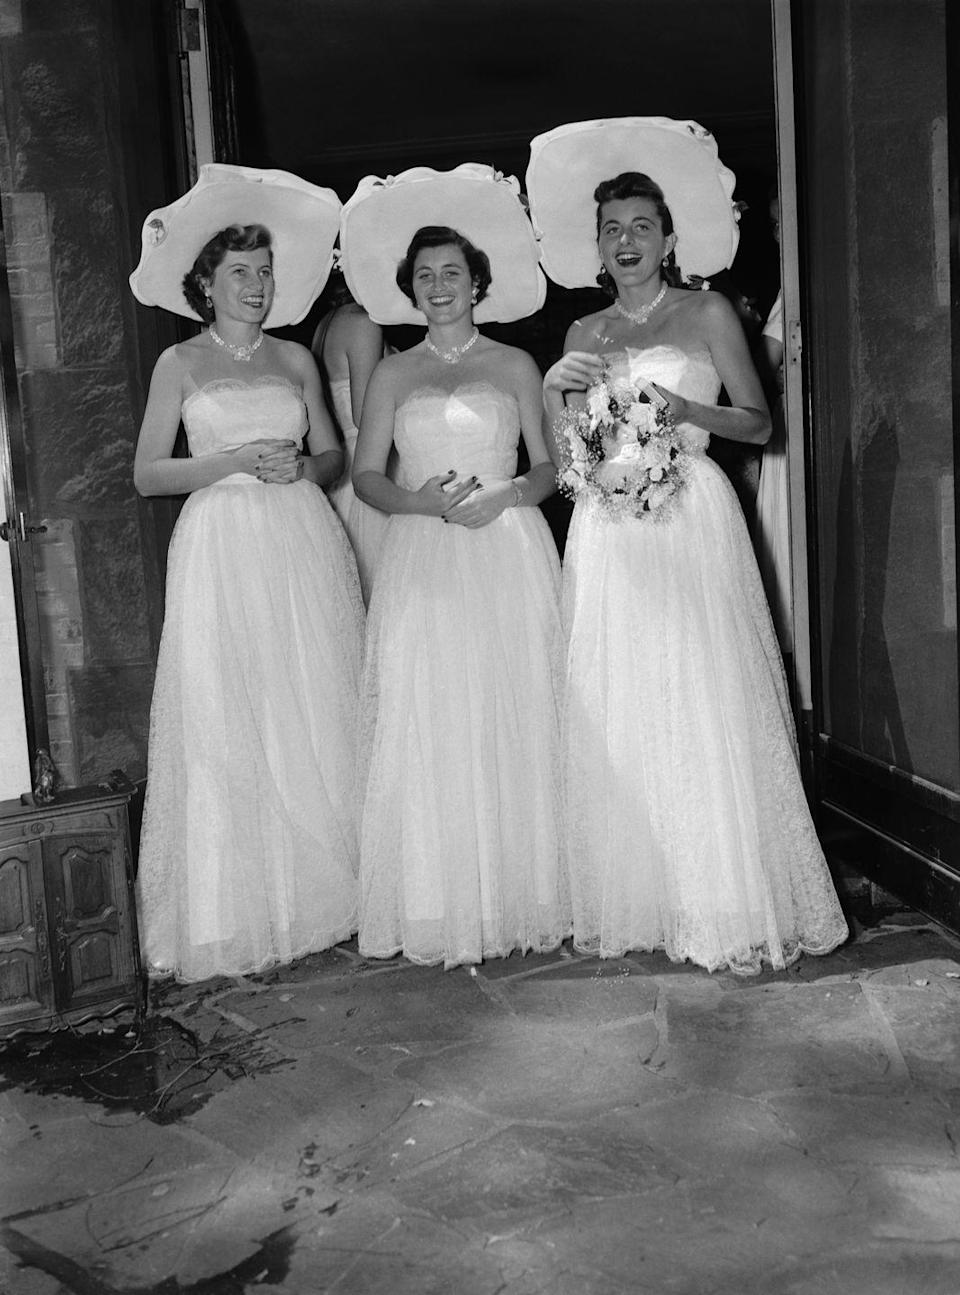 <p>Jean (center), Eunice (left), and Patricia (right), served as bridesmaids at their brother Robert's wedding to Ethel Skakel.</p>